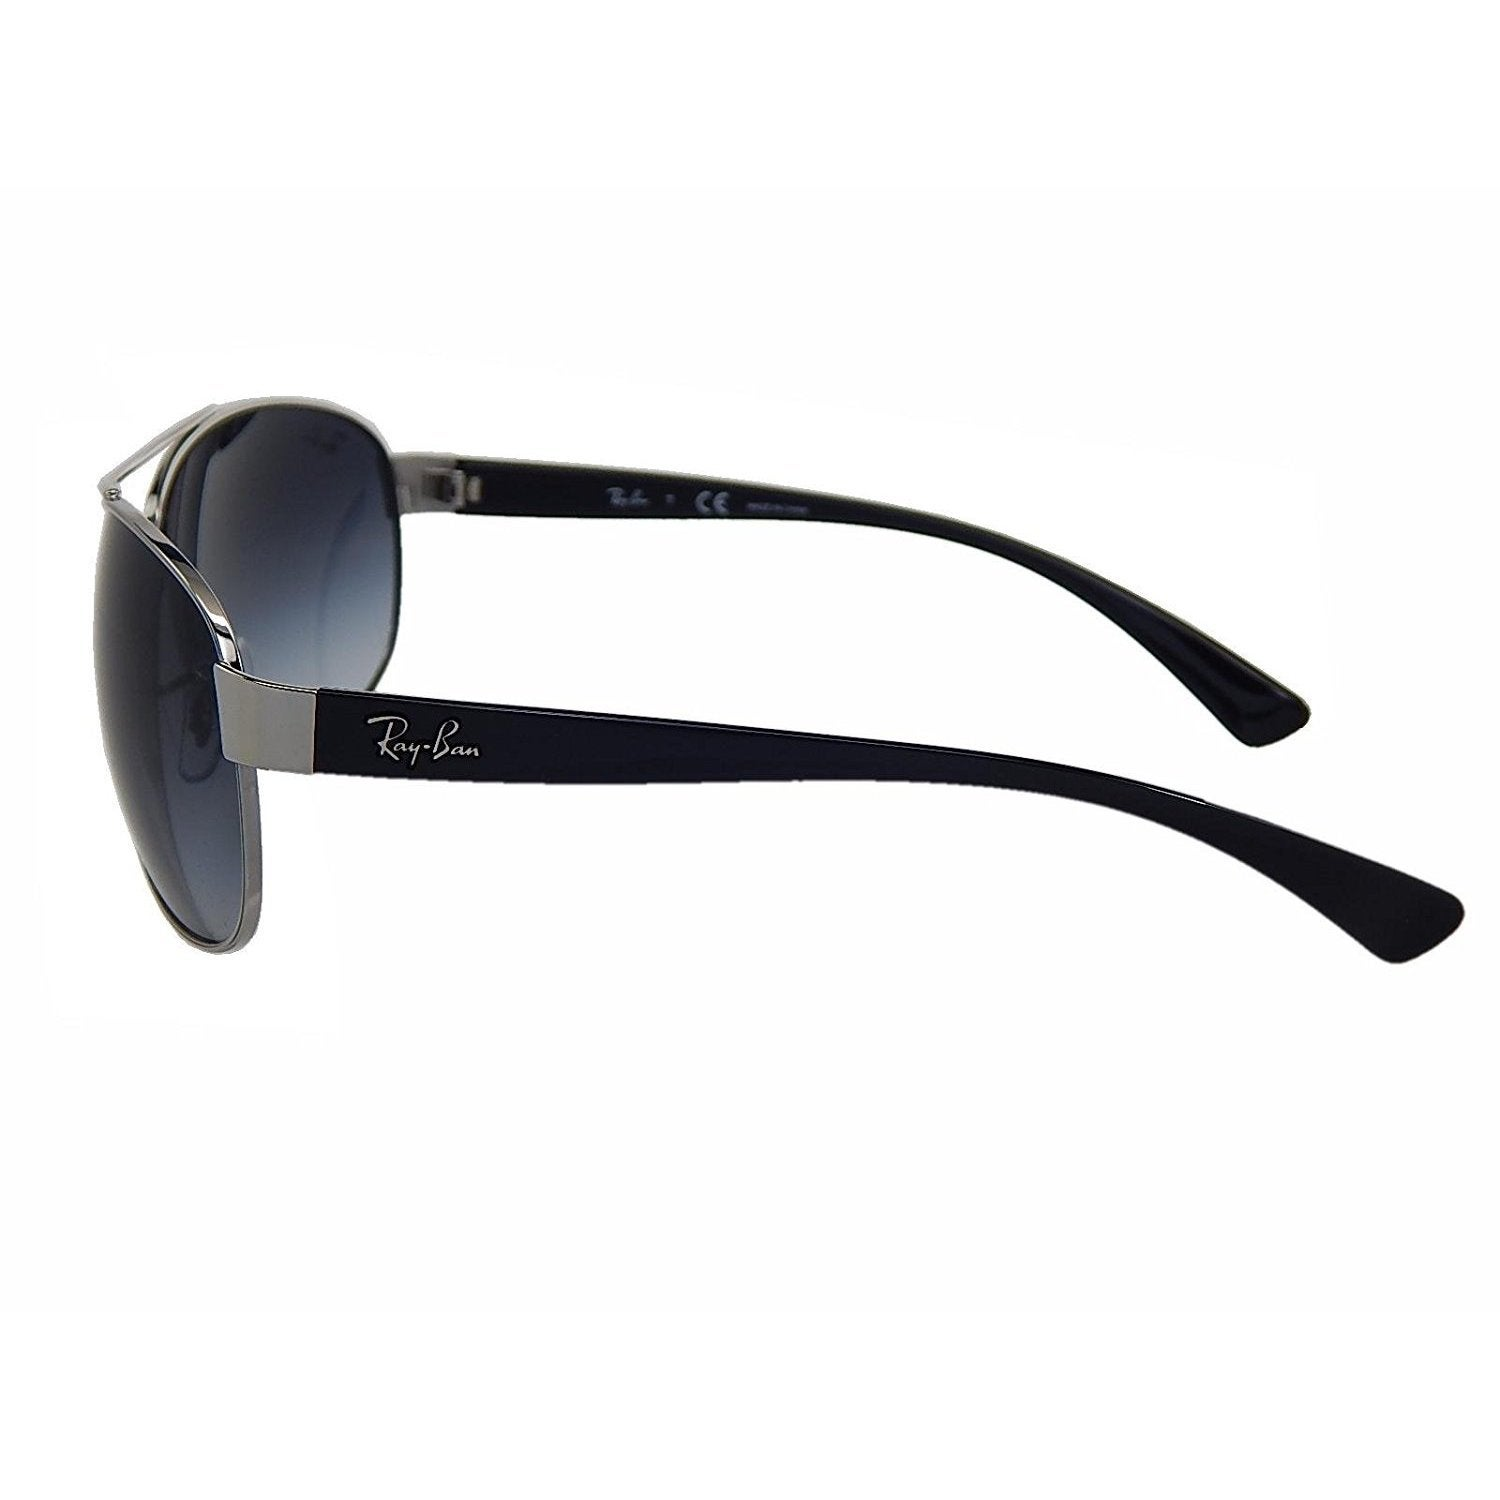 155a5922022 Shop Ray-Ban RB3386 003 8G Silver Black Frame Grey Gradient 67mm Lens  Sunglasses - Free Shipping Today - Overstock - 14327958